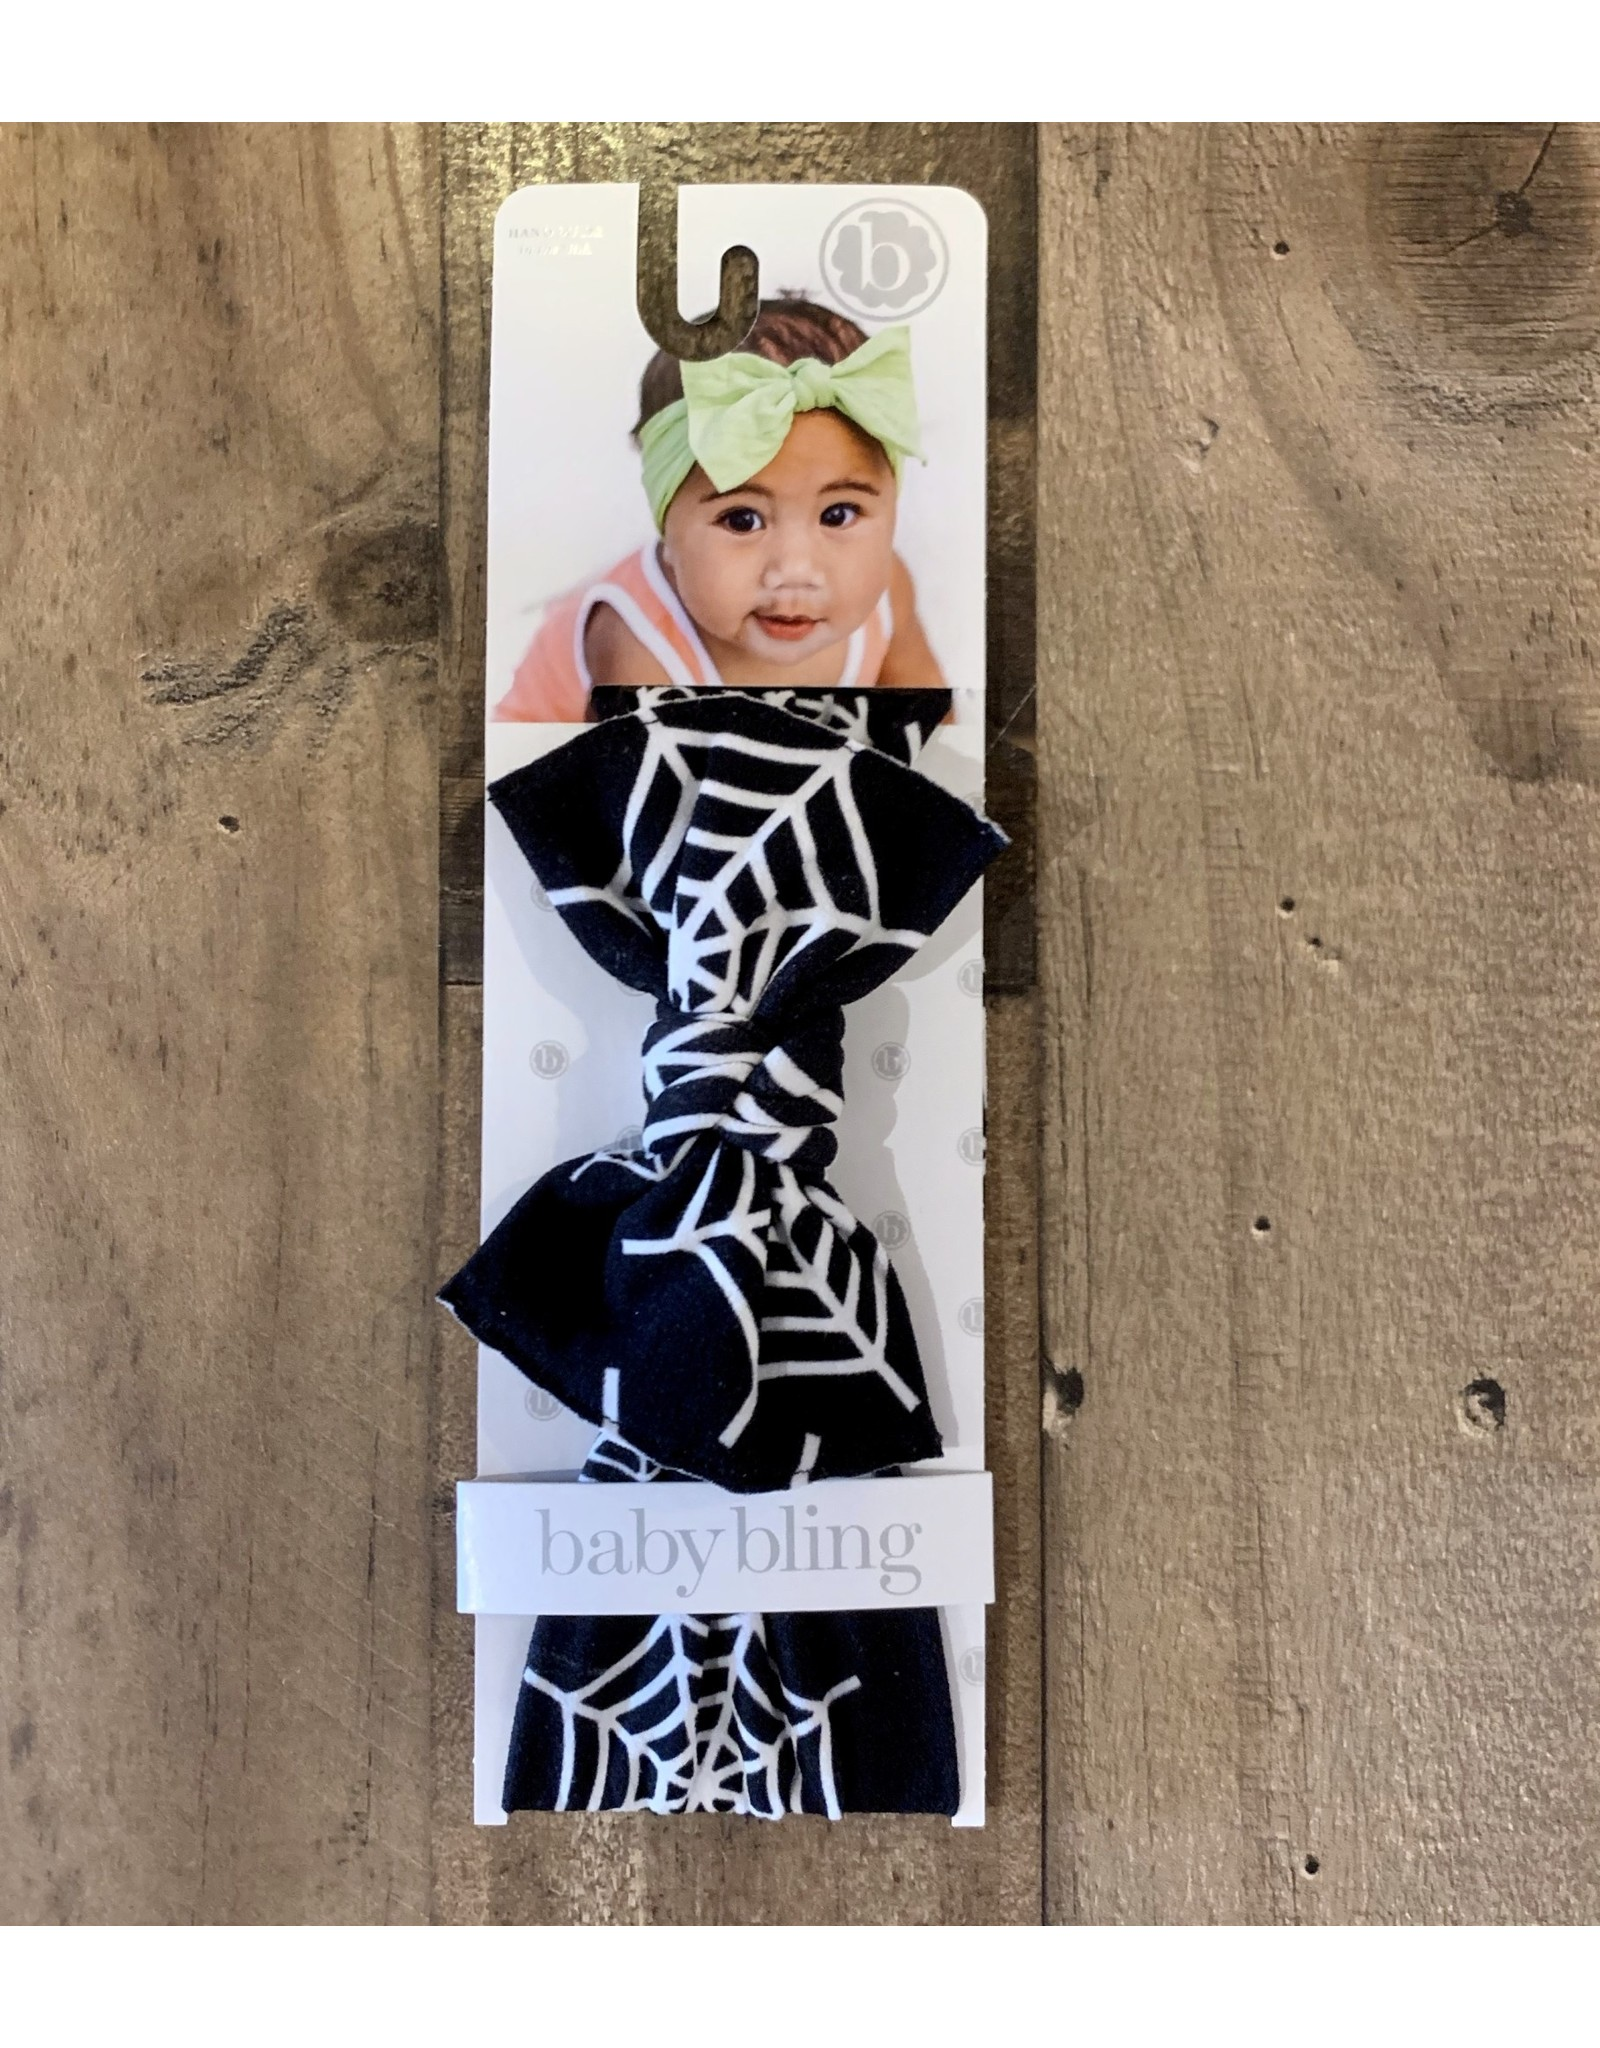 Baby Bling Baby Bling - Printed Knot Web